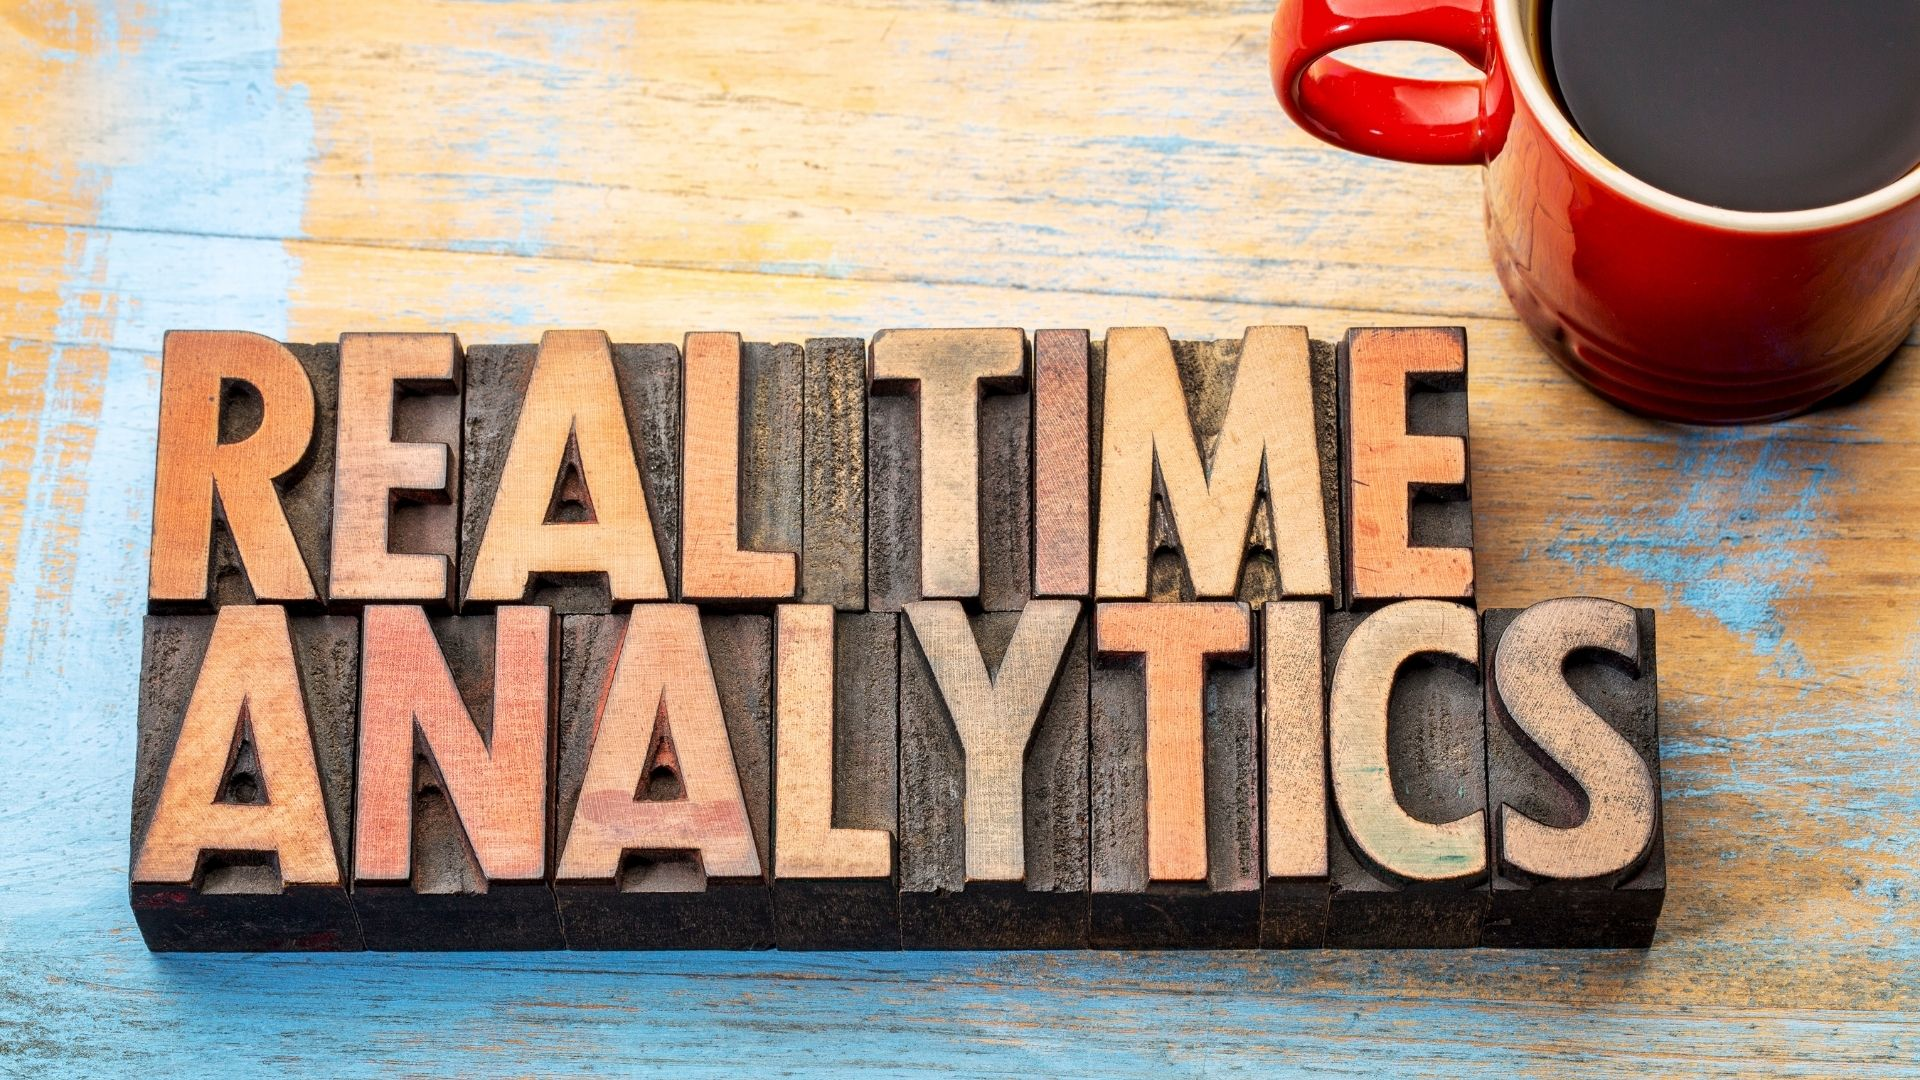 Upgrading the finance department: The benefits of real-time analytics 41